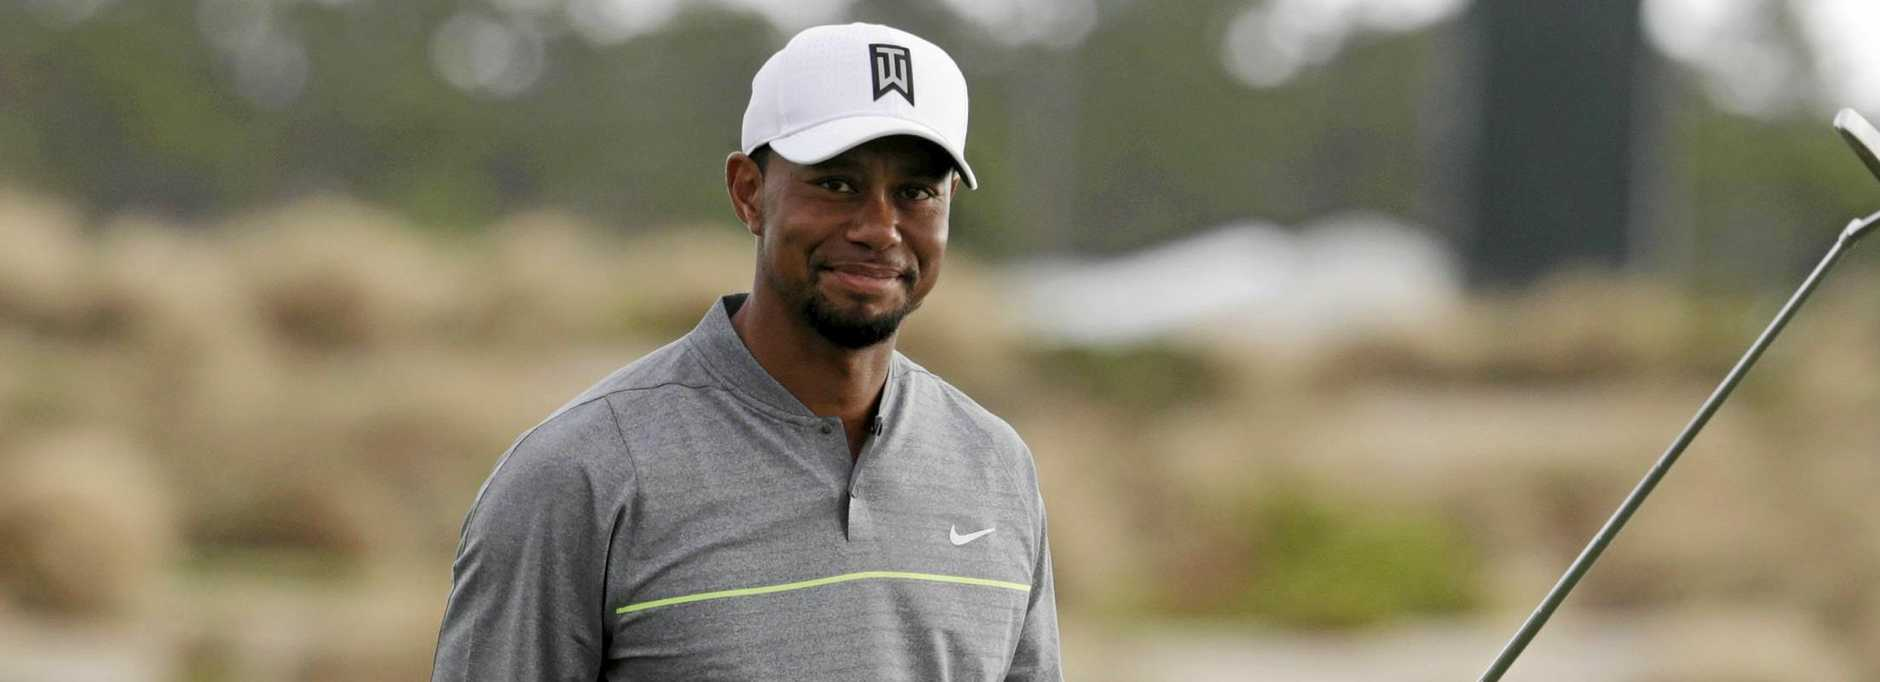 Tiger Woods will make his return to competition at the Hero World Challenge tournament later this month.